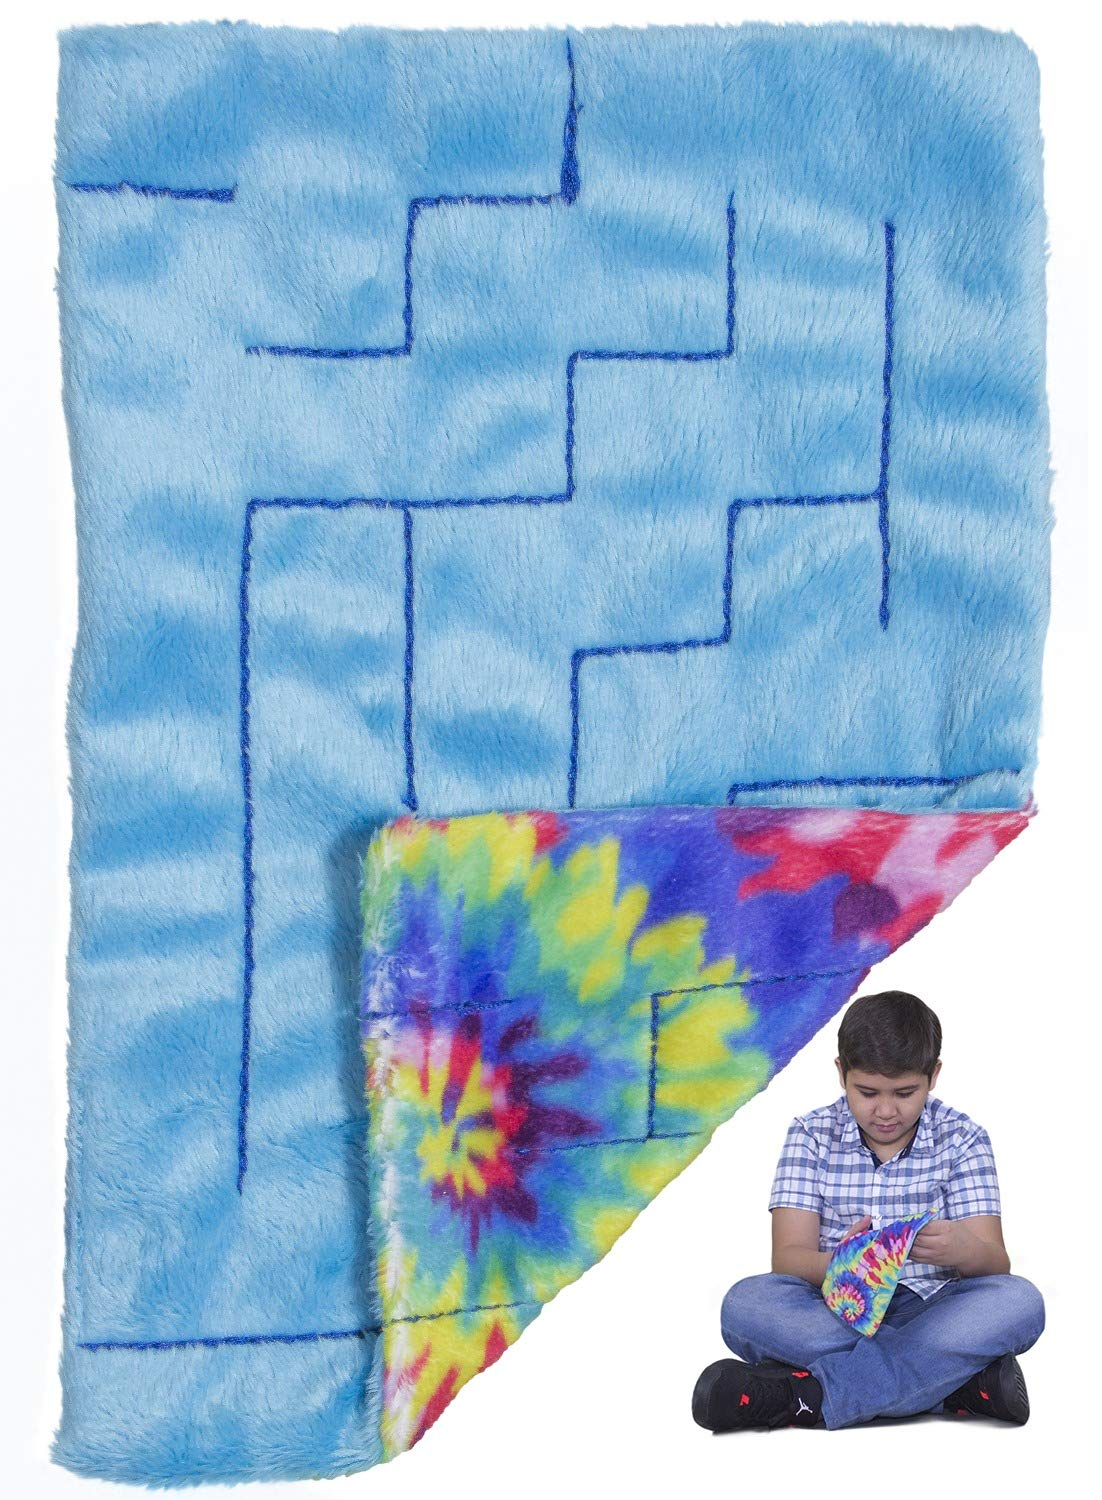 Sensory Fidget Stress Relief Toys: LAKIKID Marble Maze Mat- Tactile Sensory Toys for Children & Adults- Ideal Fidget Toys for Sensory Kids- Reduce Stress, Anxiety and Improve Focus, 9'' x 6'' by LakiKid